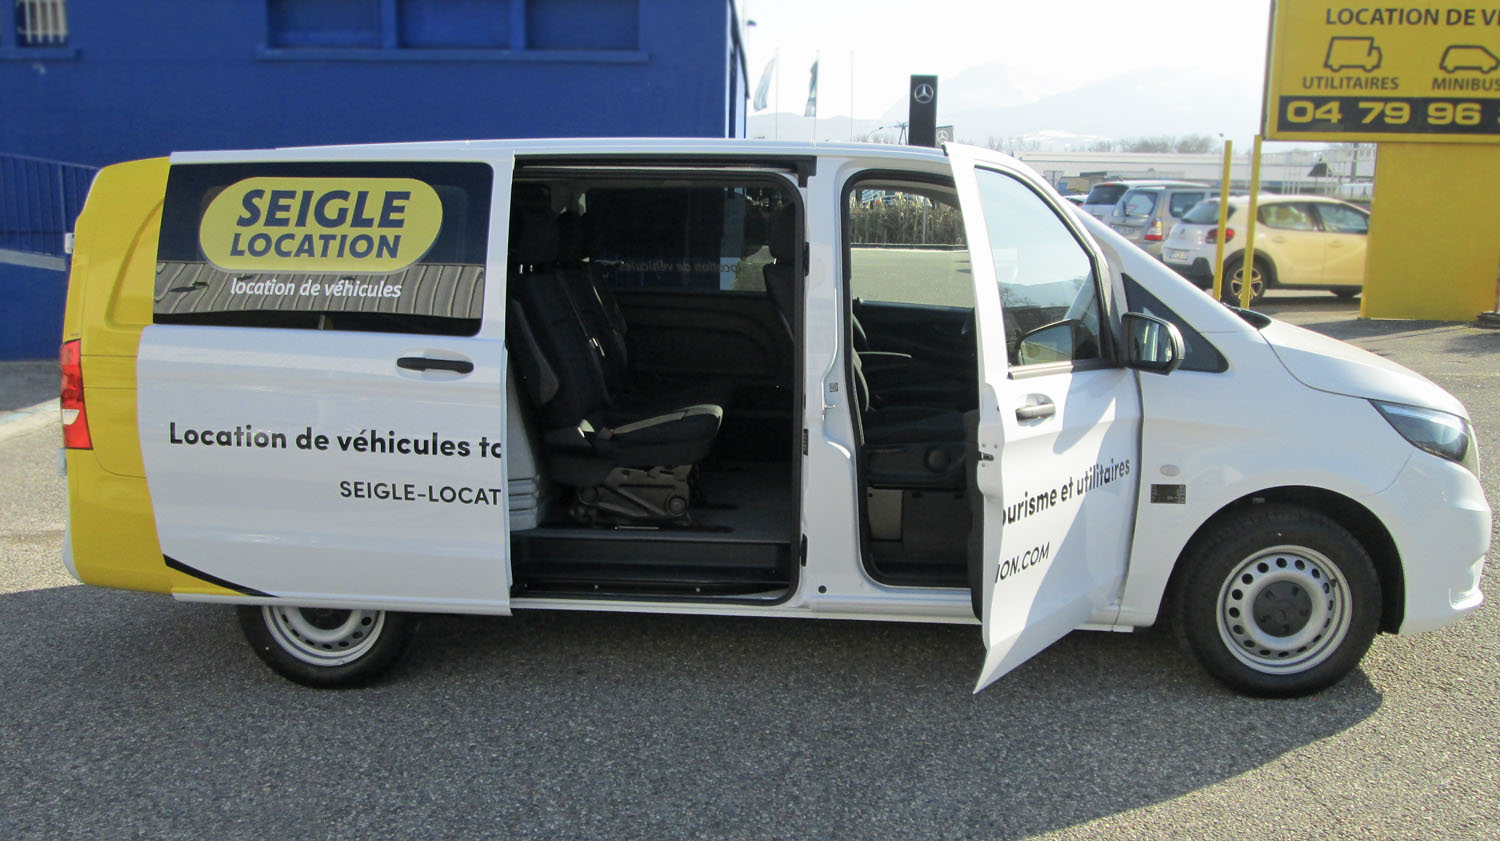 SEIGLE-LOCATION-mercedes-vito-5-places-2